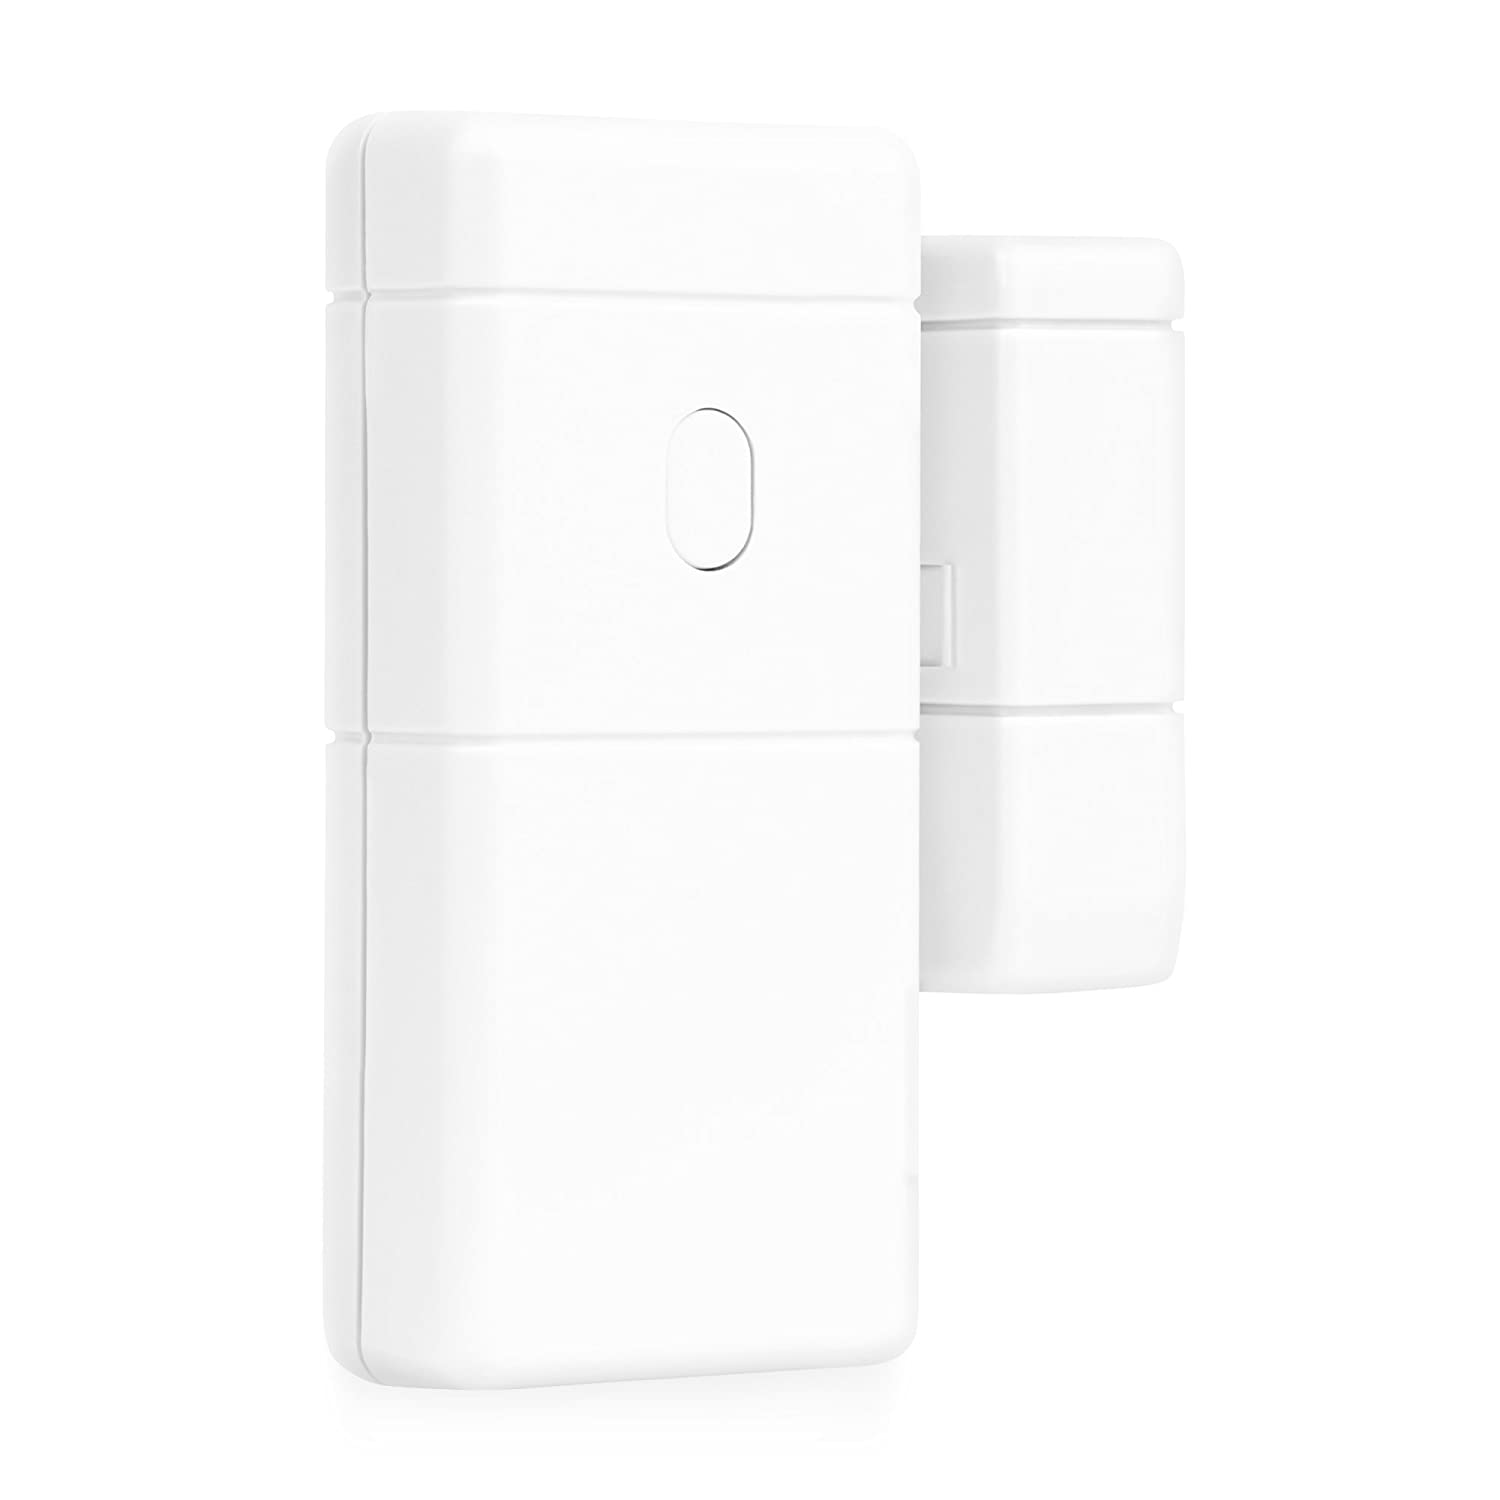 Samsung SmartThings ADT Door and Window Detector